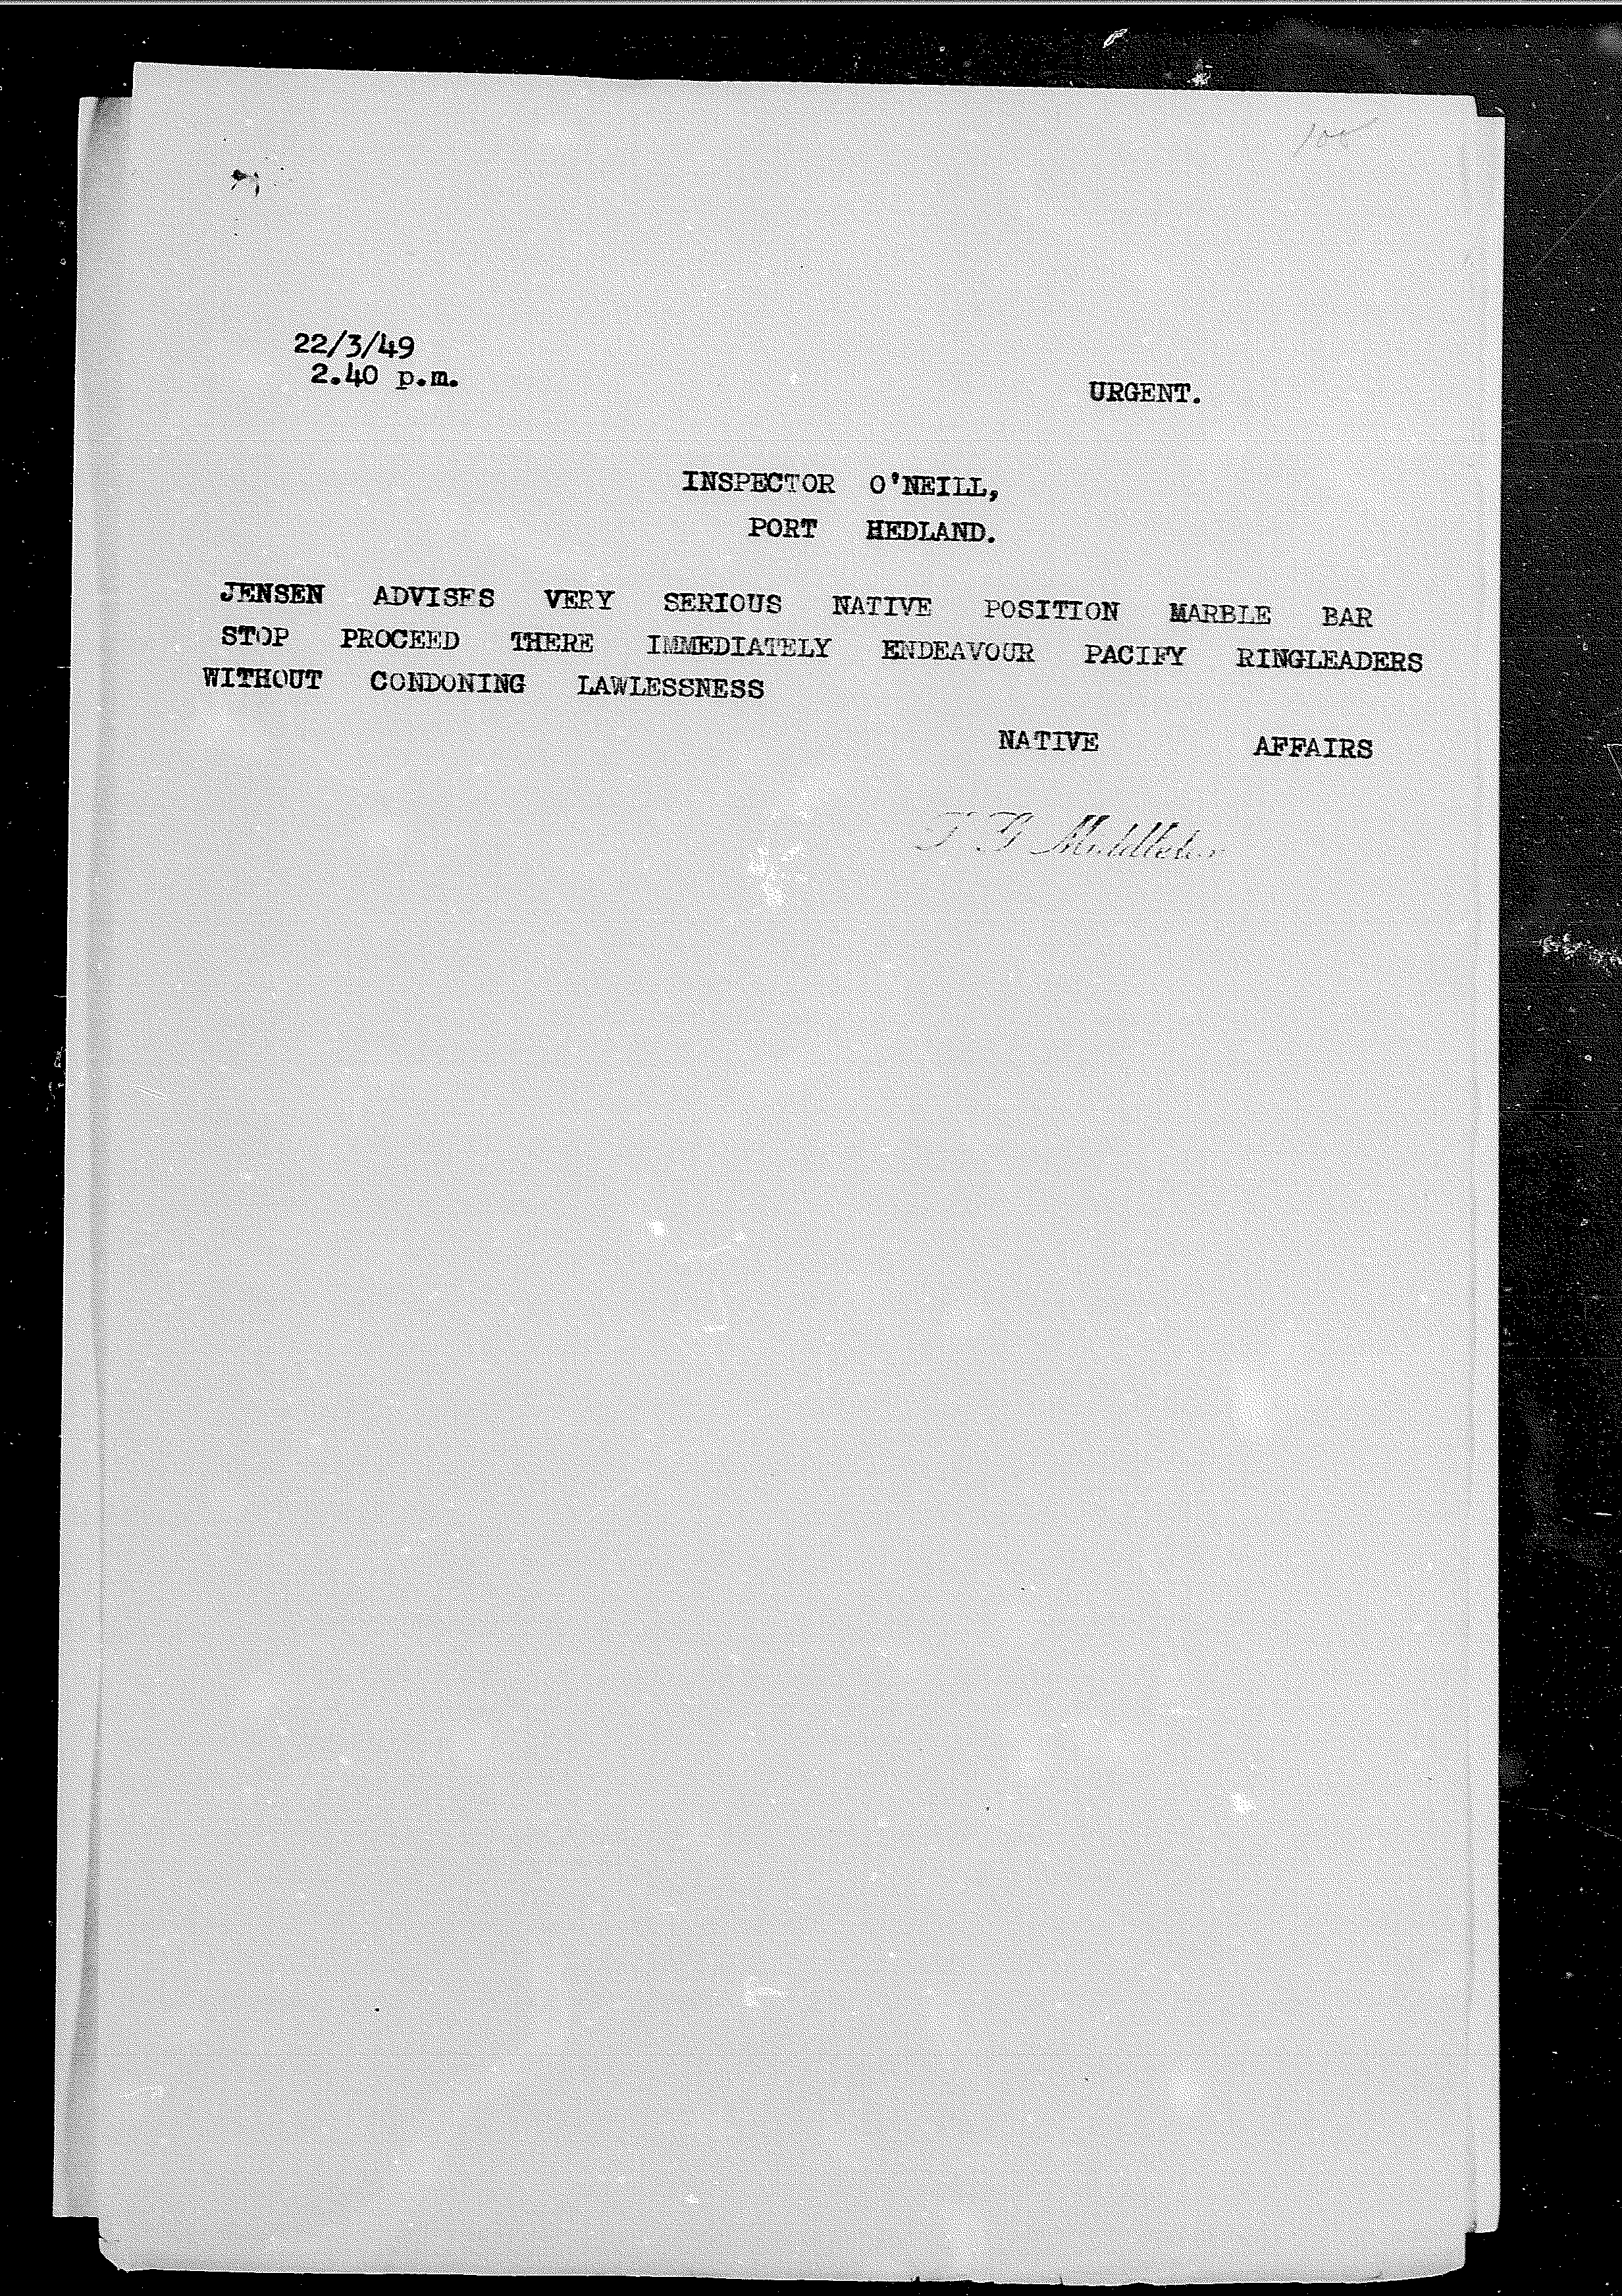 Middleton to O'Neill, 22 March 1949